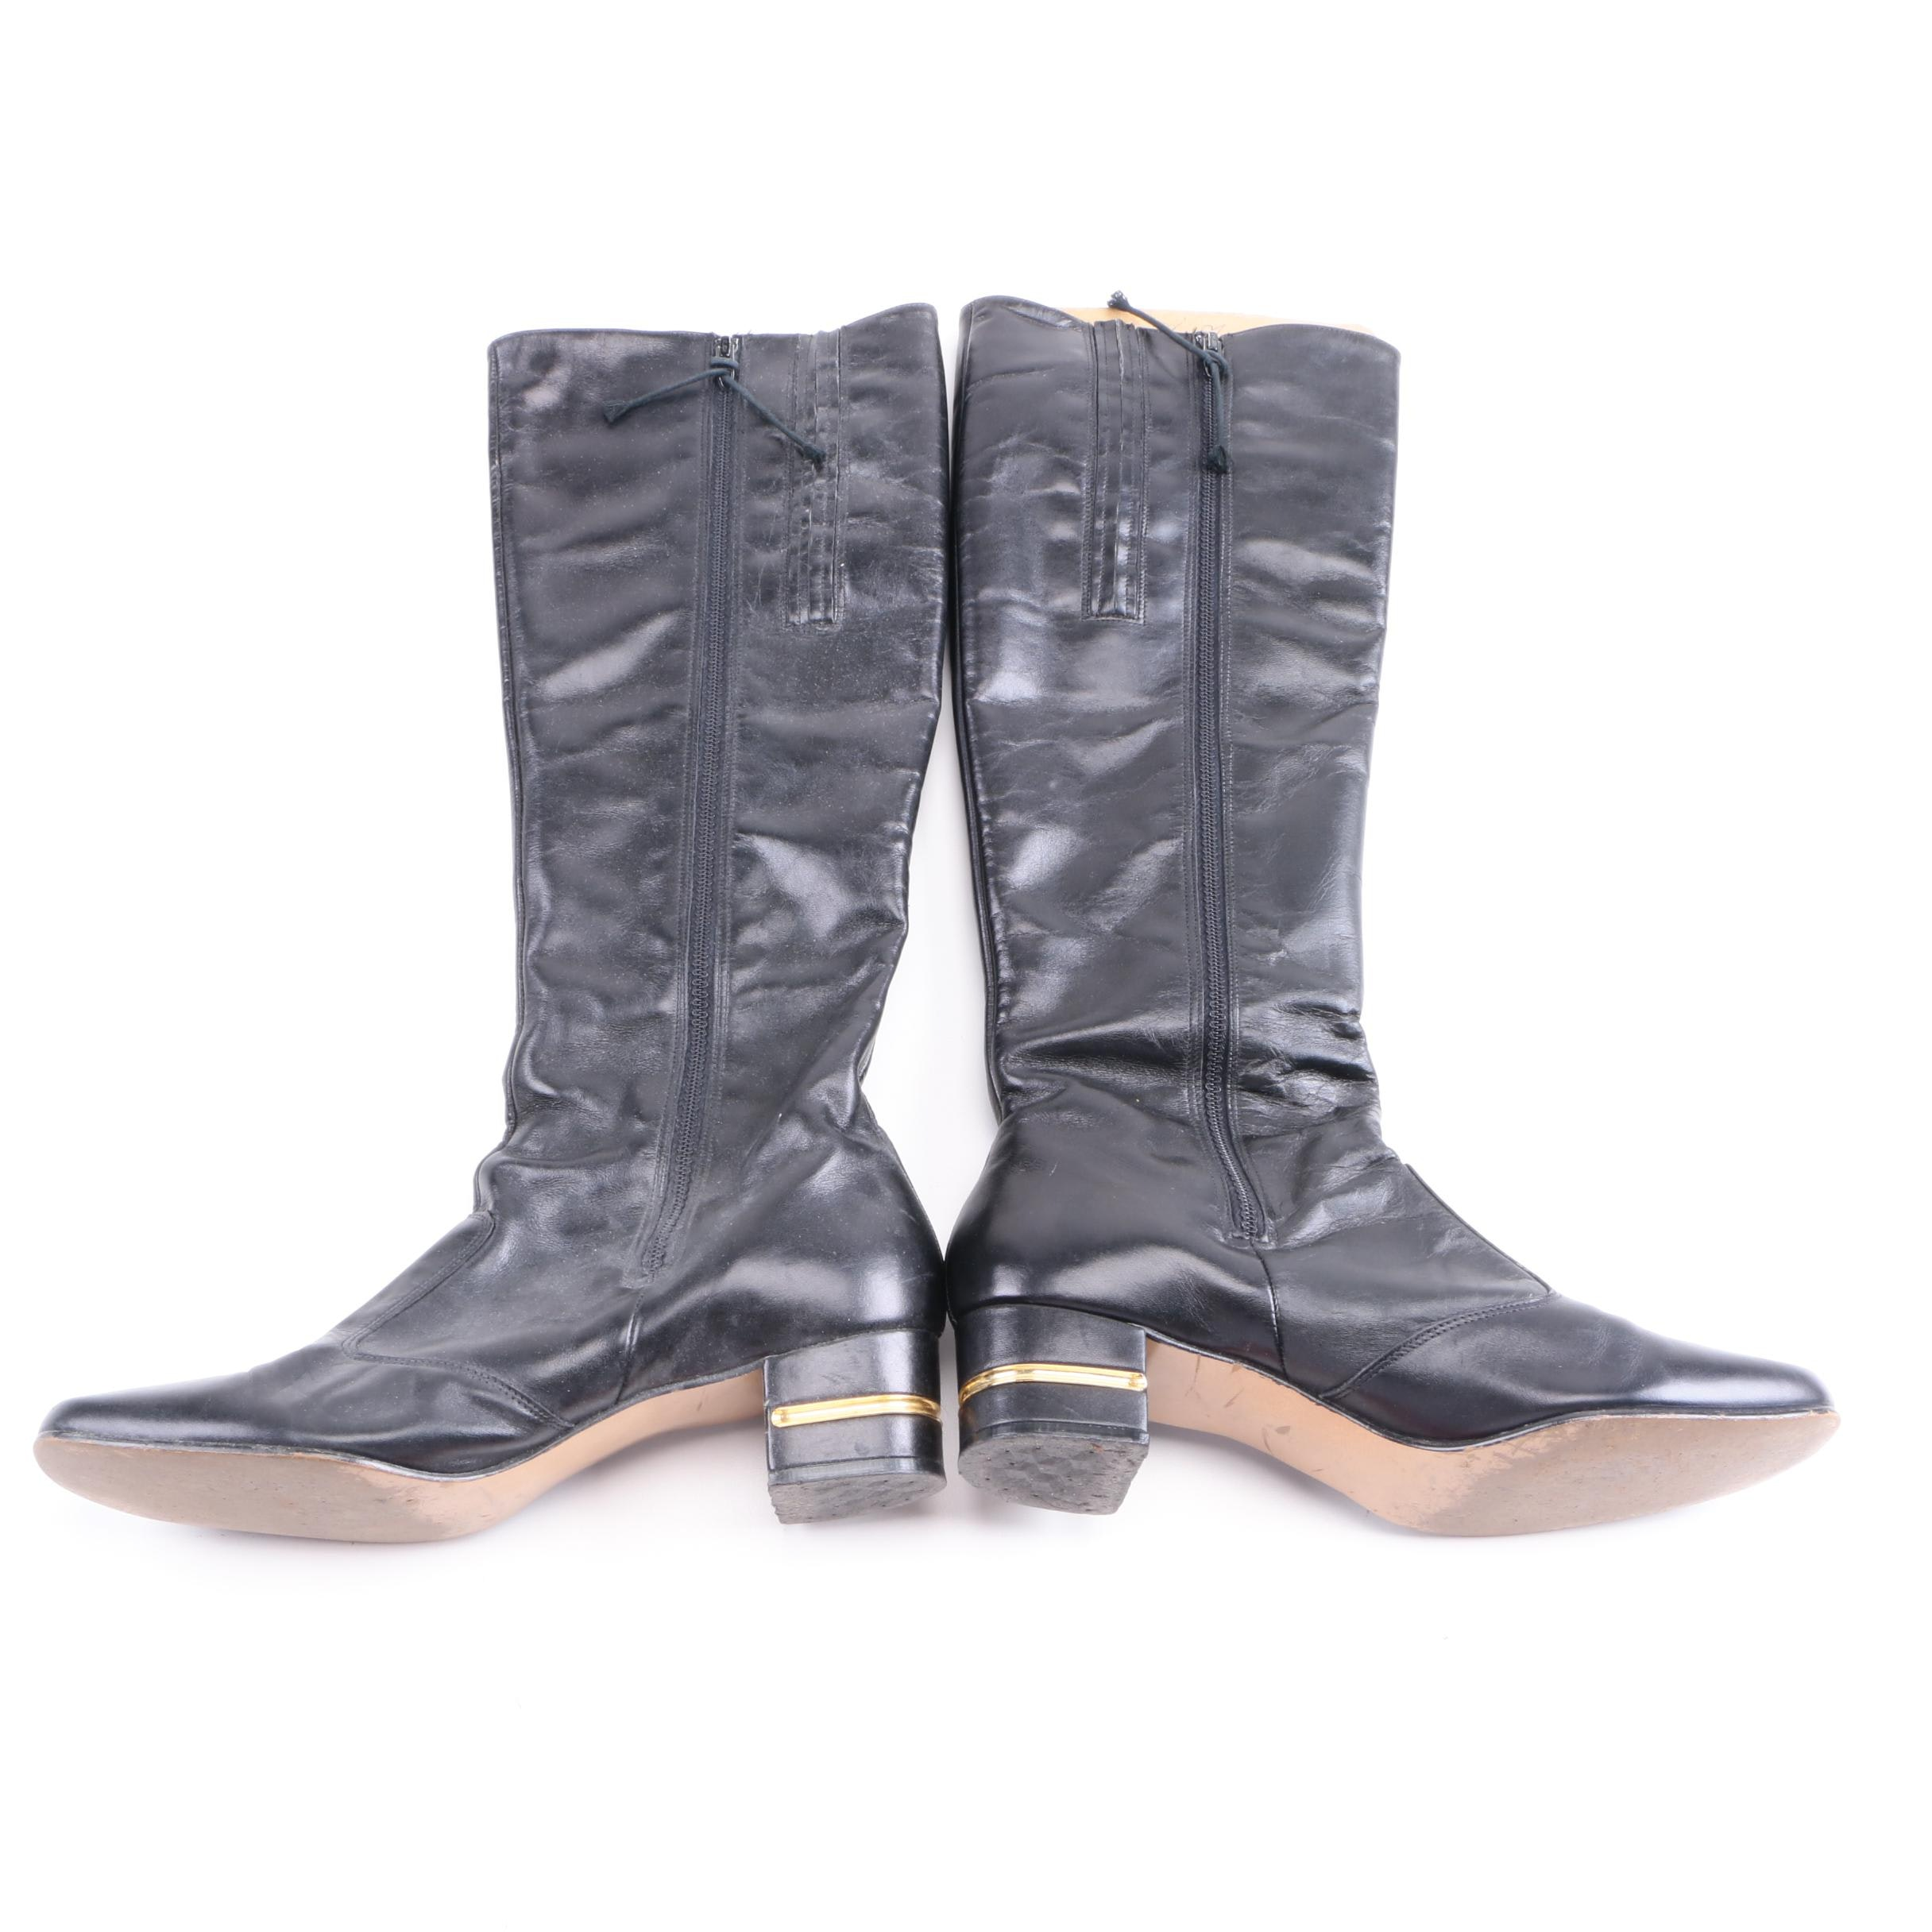 Women's Selby Black Leather Boots